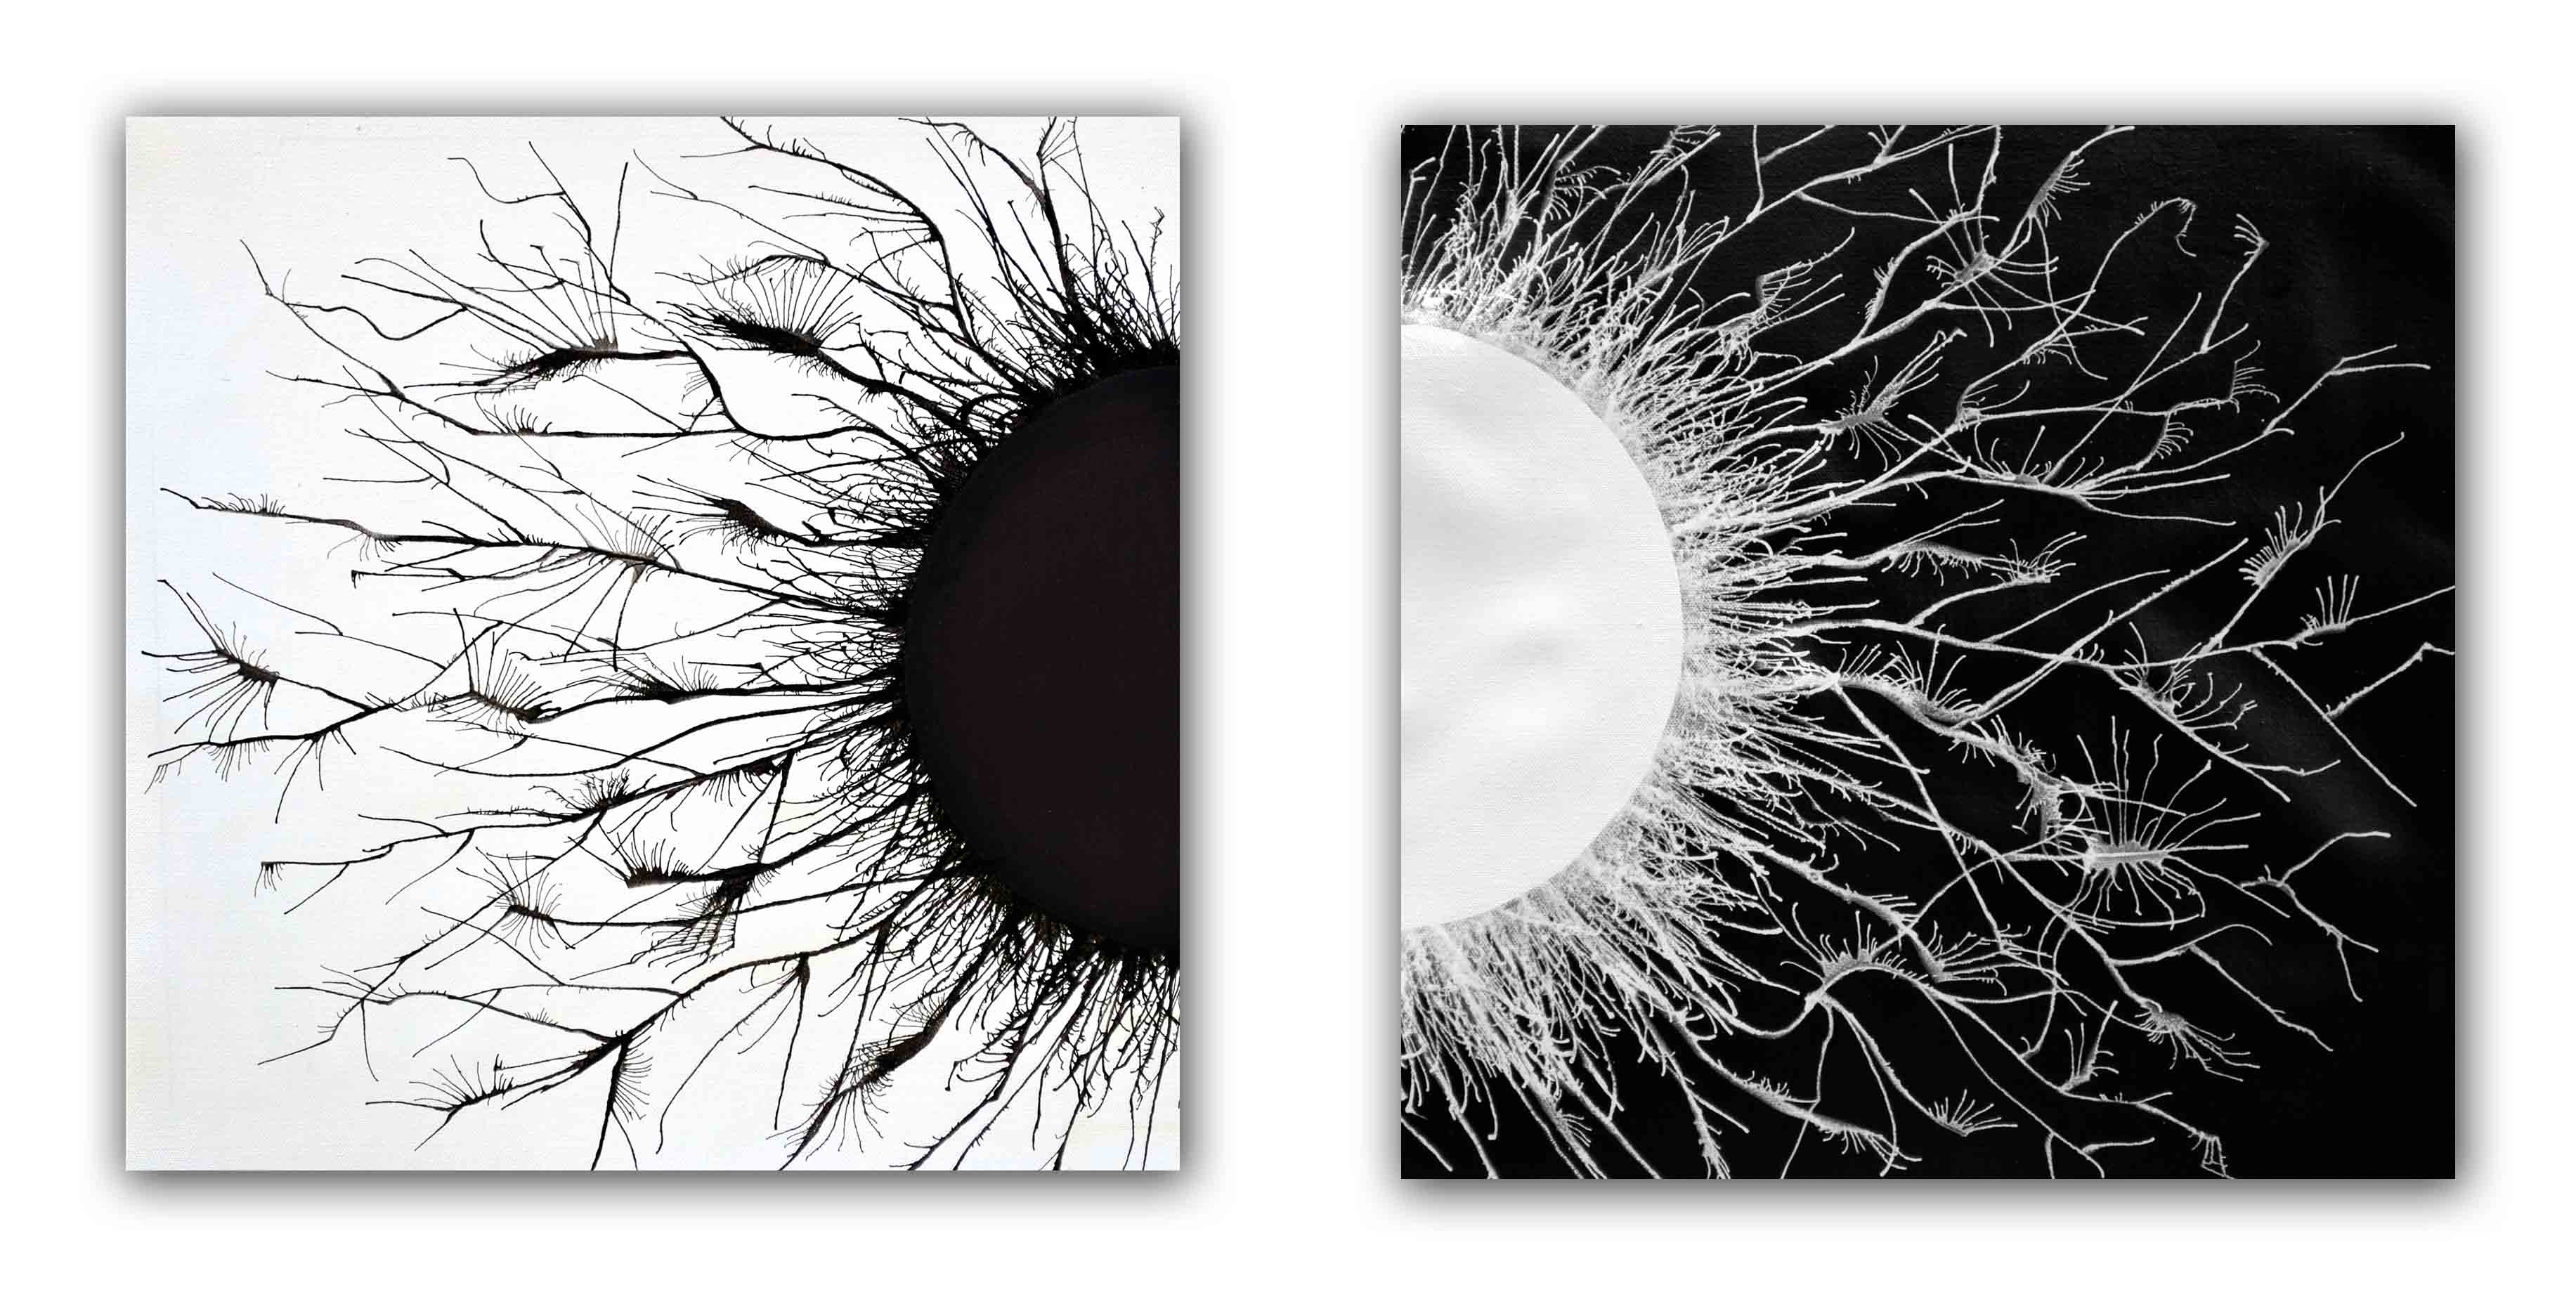 Opposites Acrylic Diptych Painting Contemporary Art